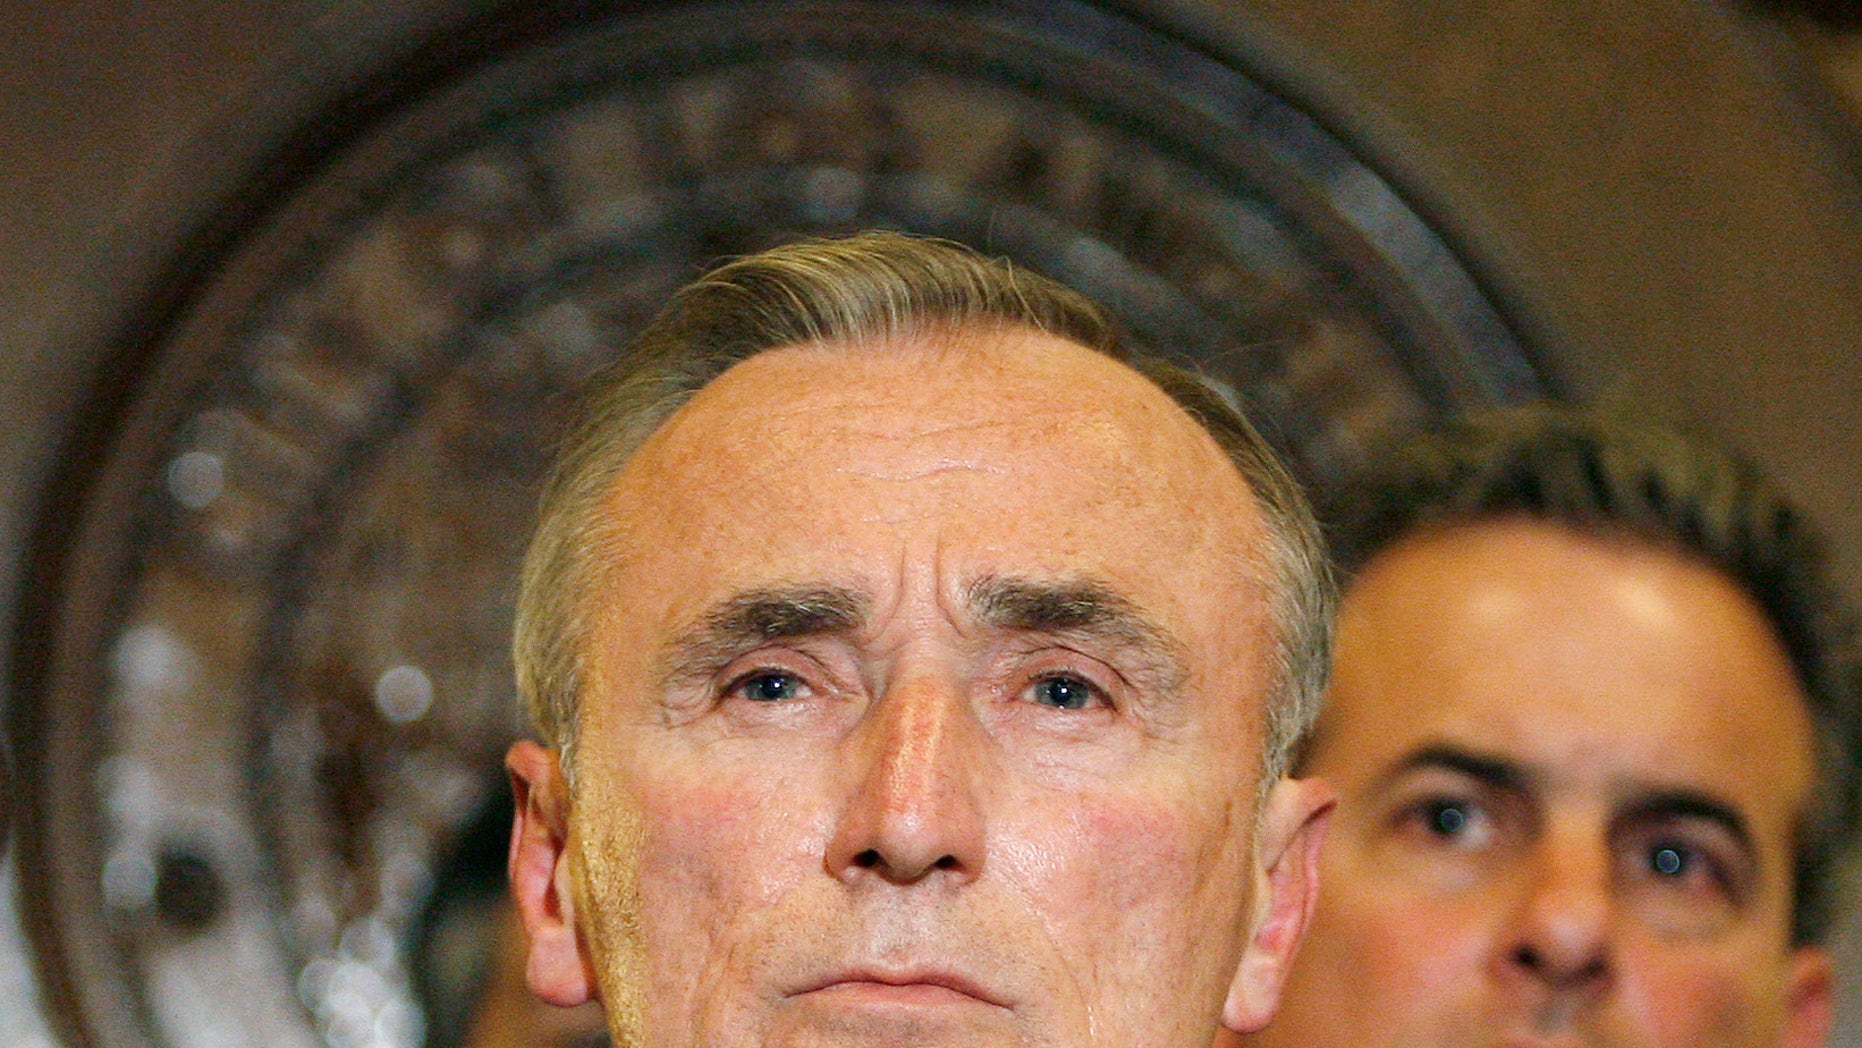 May 2, 2007: Former Los Angeles Police Chief William J. Bratton, left, takes a question during a news conference with city leaders at Los Angeles City Hall. Britain's Prime Minister David Cameron said Thursday his country would look to the United States for solutions to gang violence after nights of riots and looting.